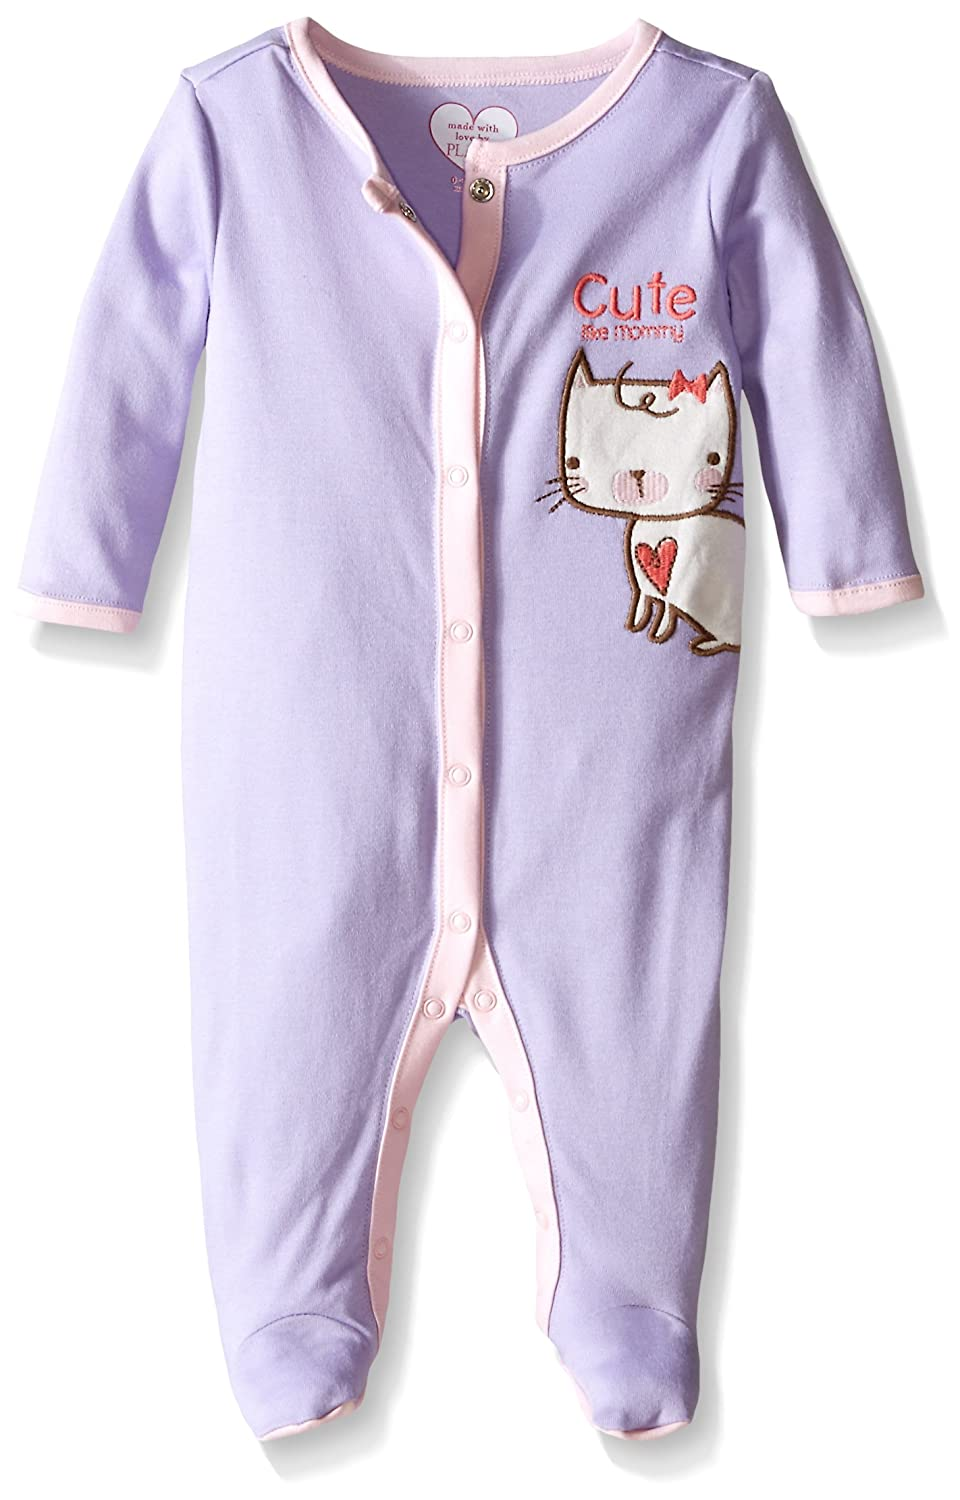 【2019正規激安】 The Children 's Place Children Baby Girls 6 ' Months Cat Sleep & Play 3 - 6 Months Purple Ribbon B013JL5ZRY, 雑貨マニアmarz:f66f4ab7 --- turtleskin-eu.access.secure-ssl-servers.info